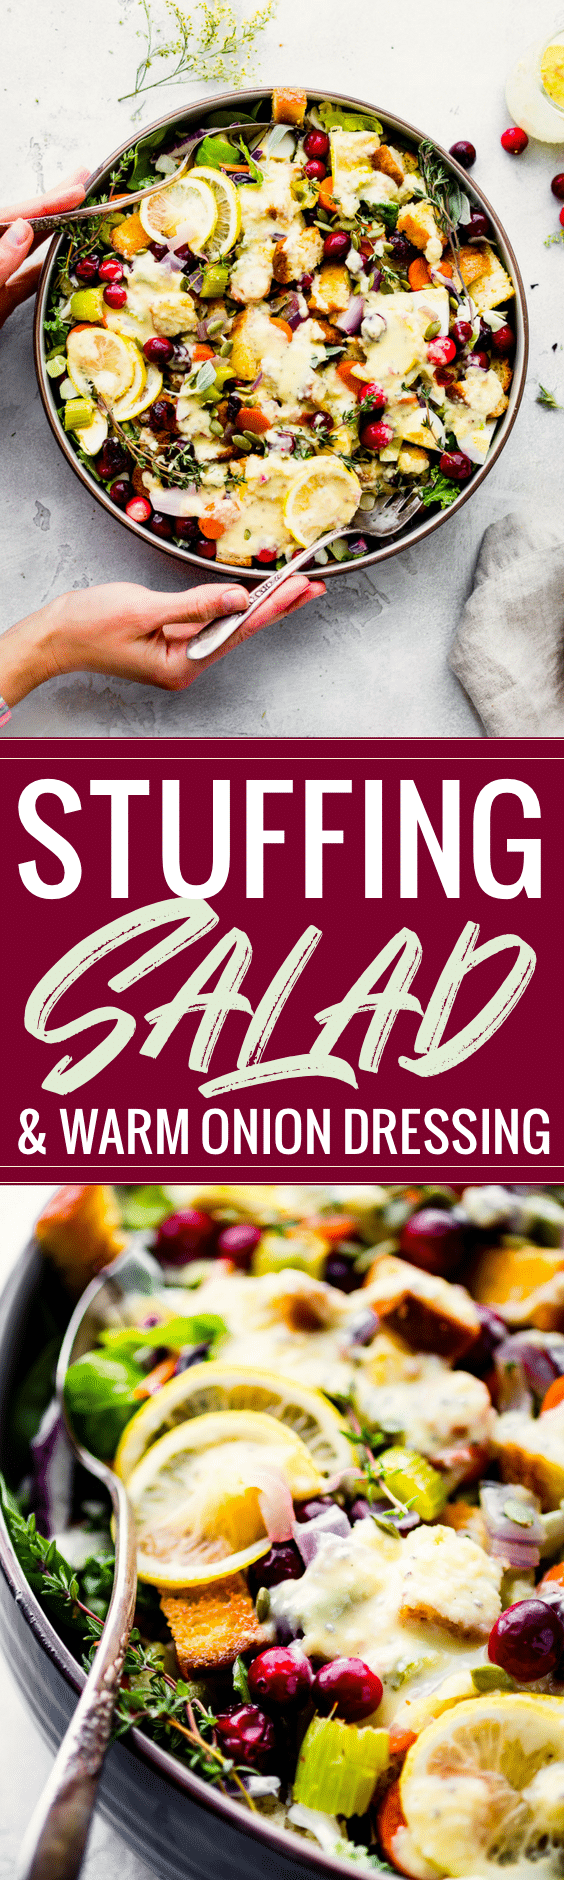 Gluten Free Stuffing Salad with Sweet Onion Dressing! A Gluten Free Stuffing recipe with a healthy twist! This easy Holiday side dish combines the comfort food of traditional stuffing with a healthy winter salad. Easy, dairy free, quick! www.cottercrunch.com